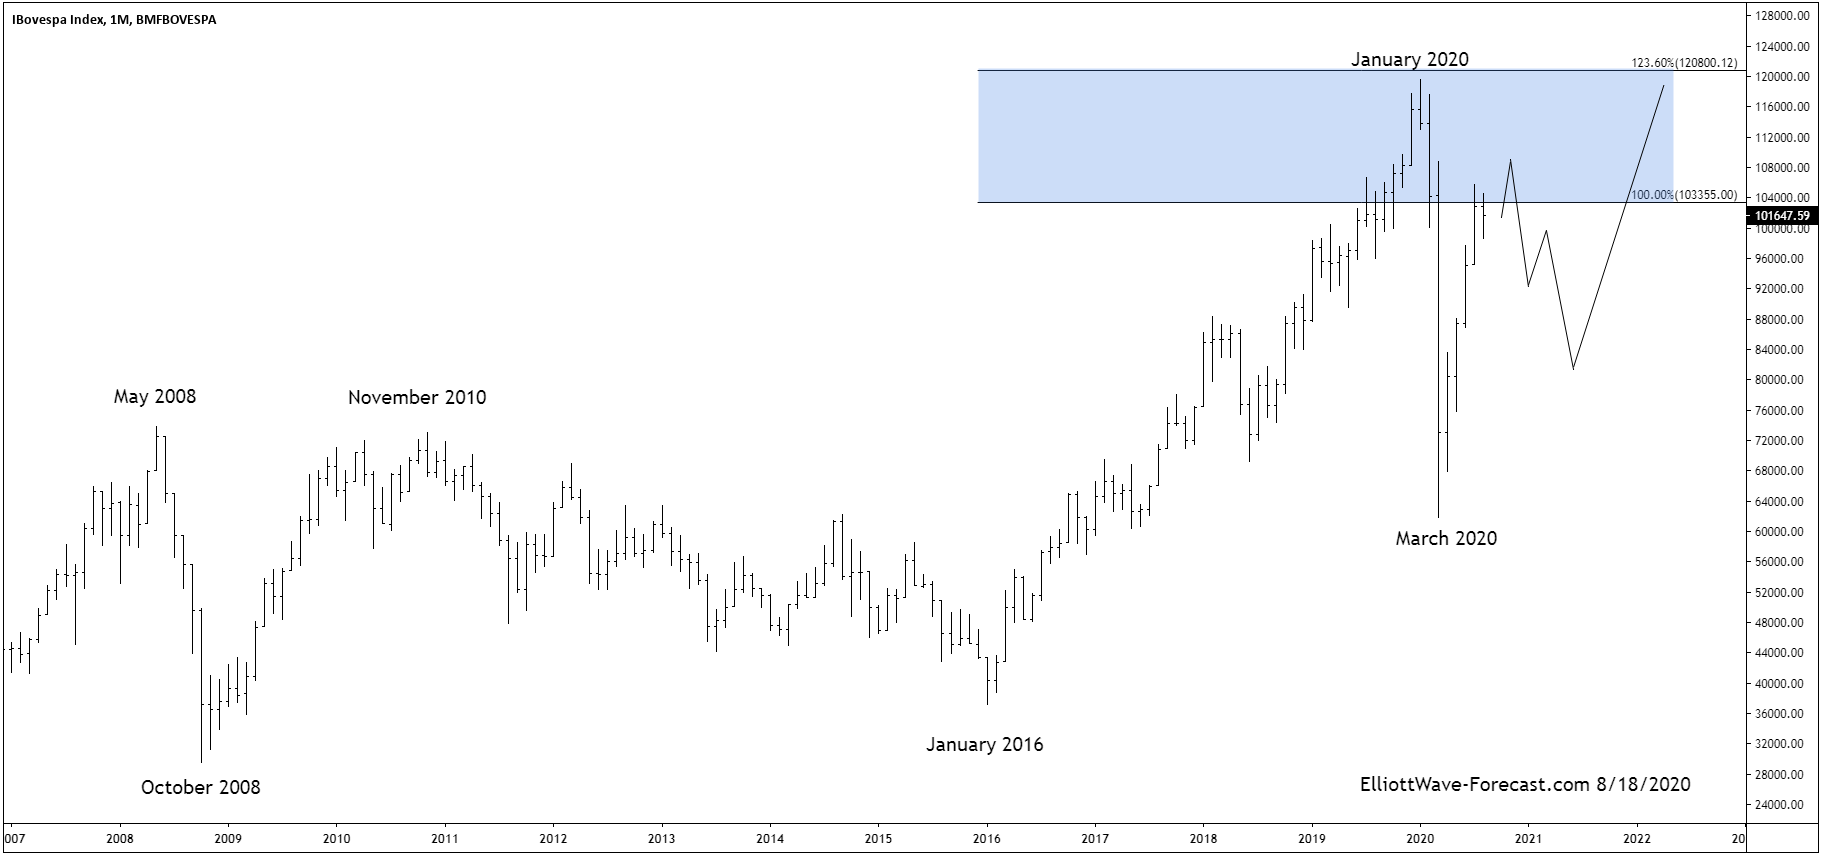 The Bovespa Index Long Term Cycles and Bullish Trend